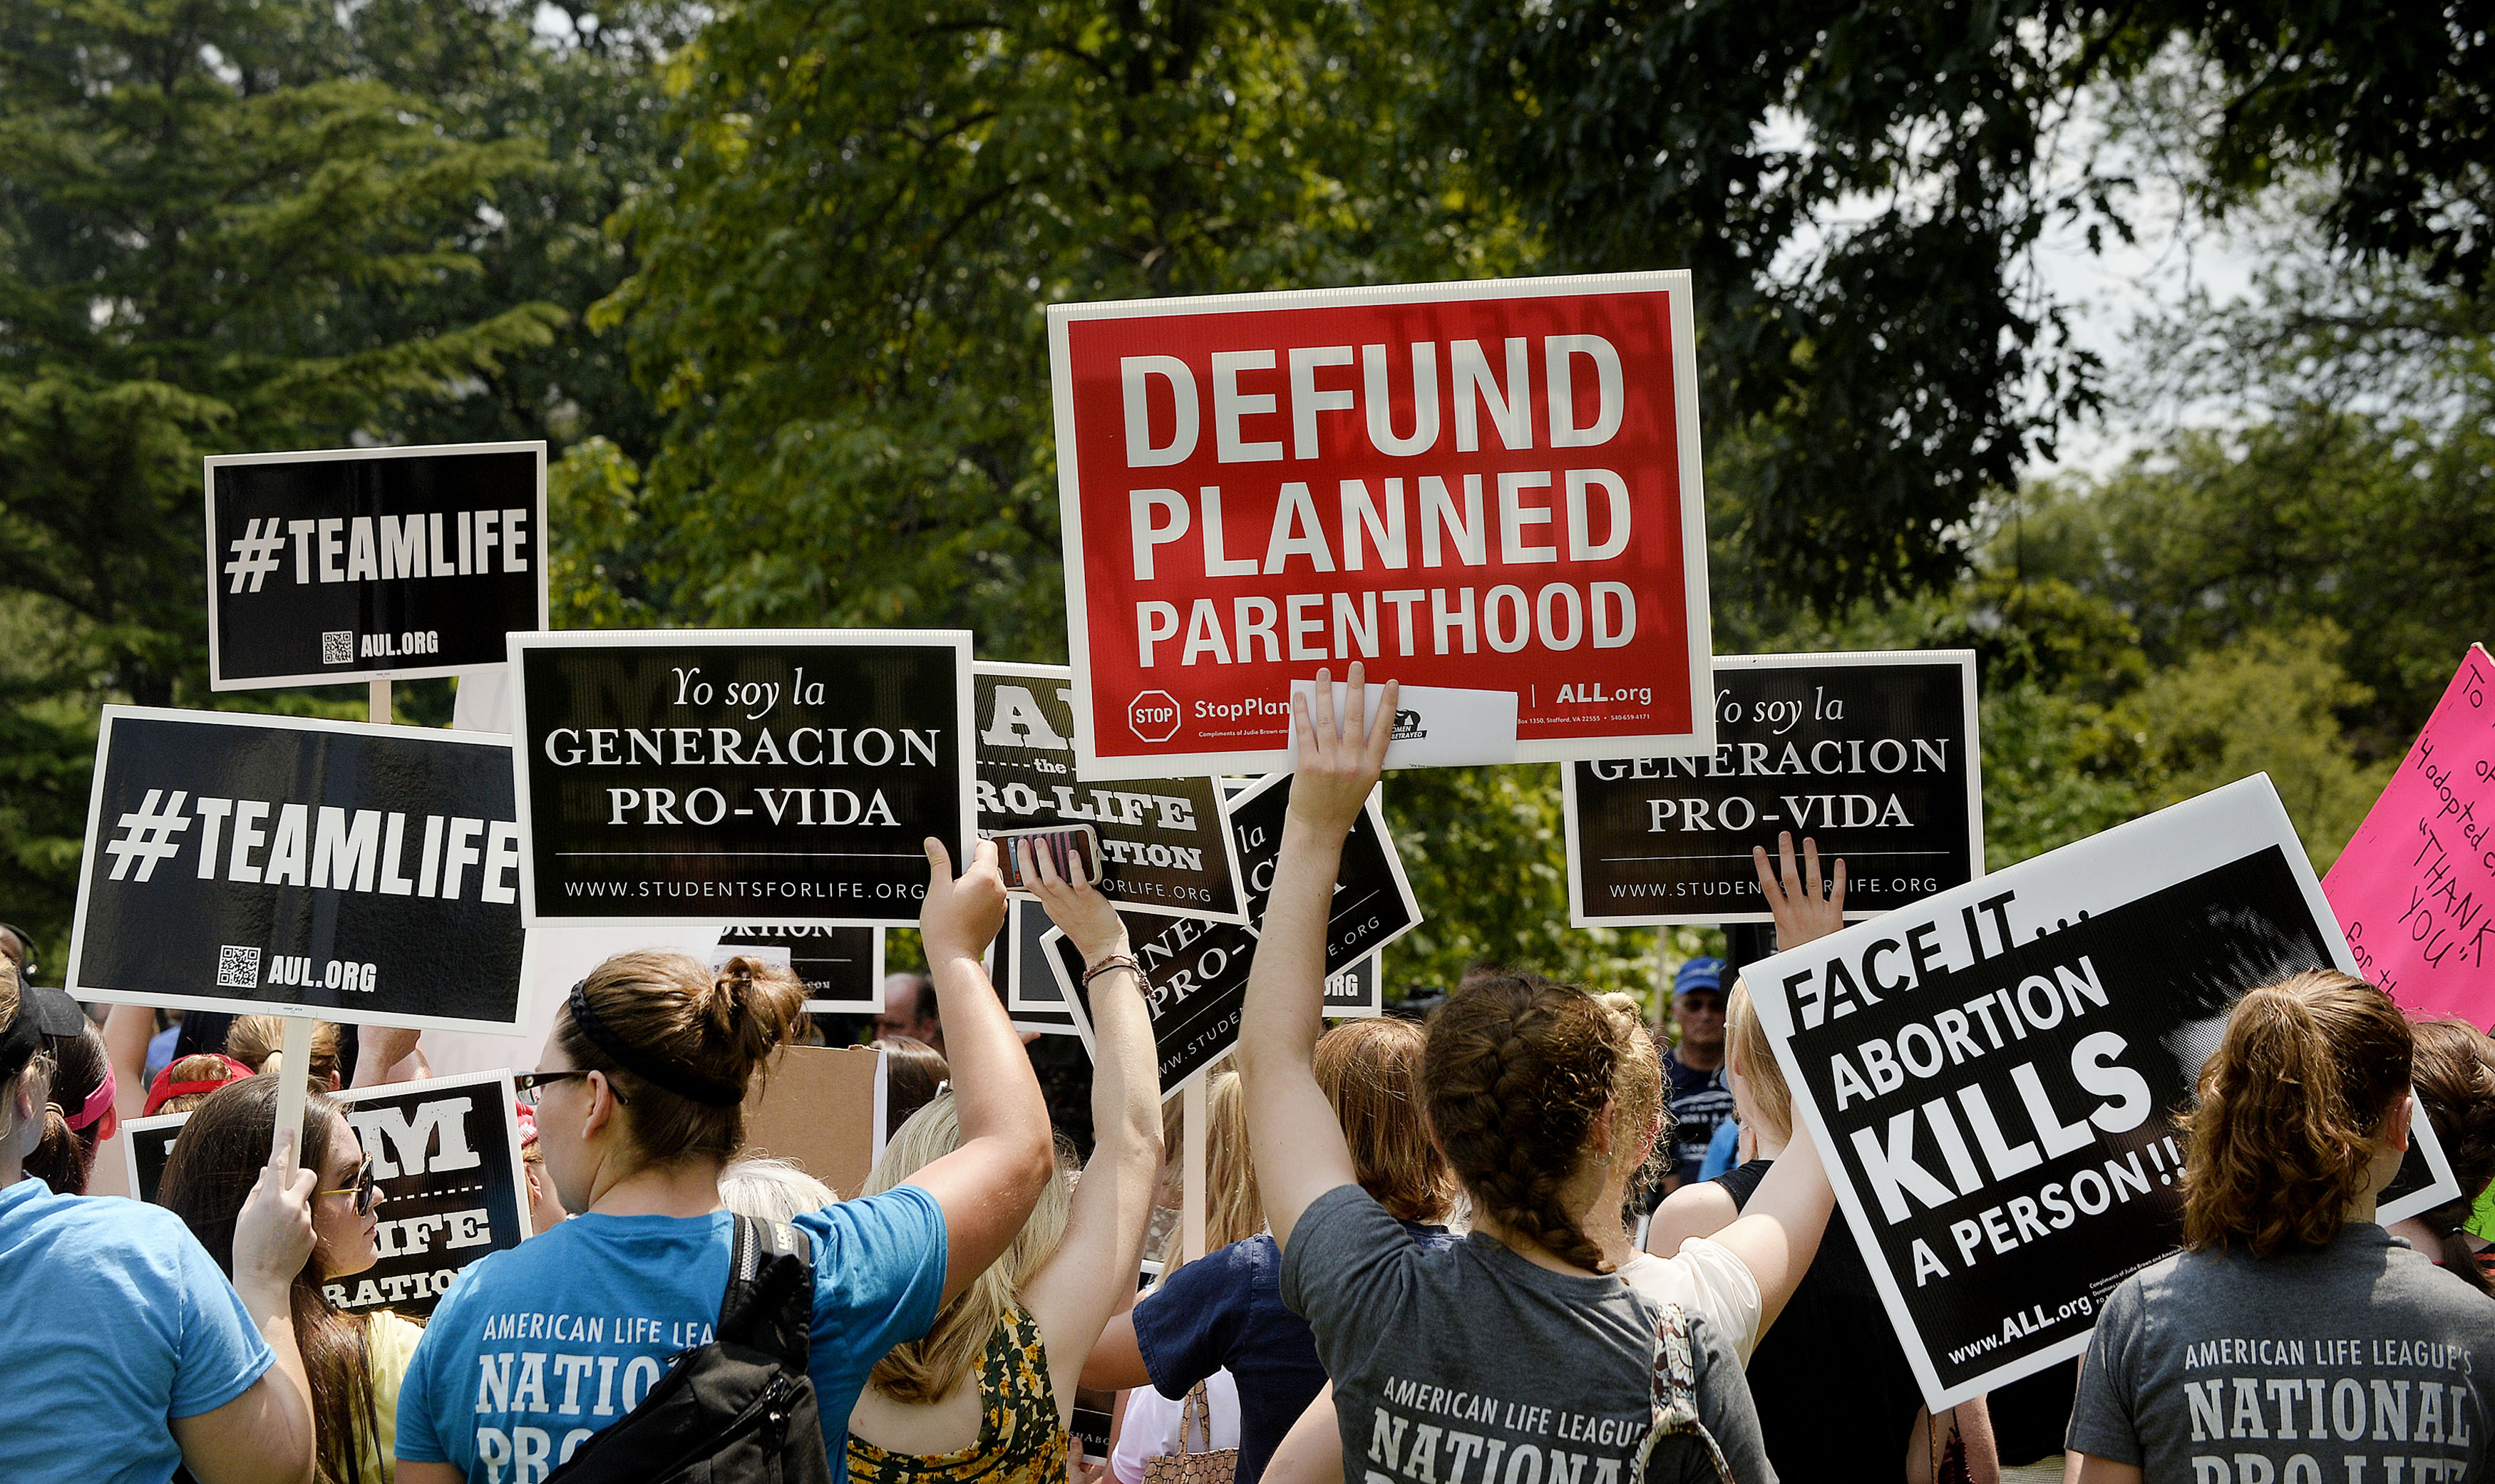 Defund Planned Parenthood Nationwide Rally